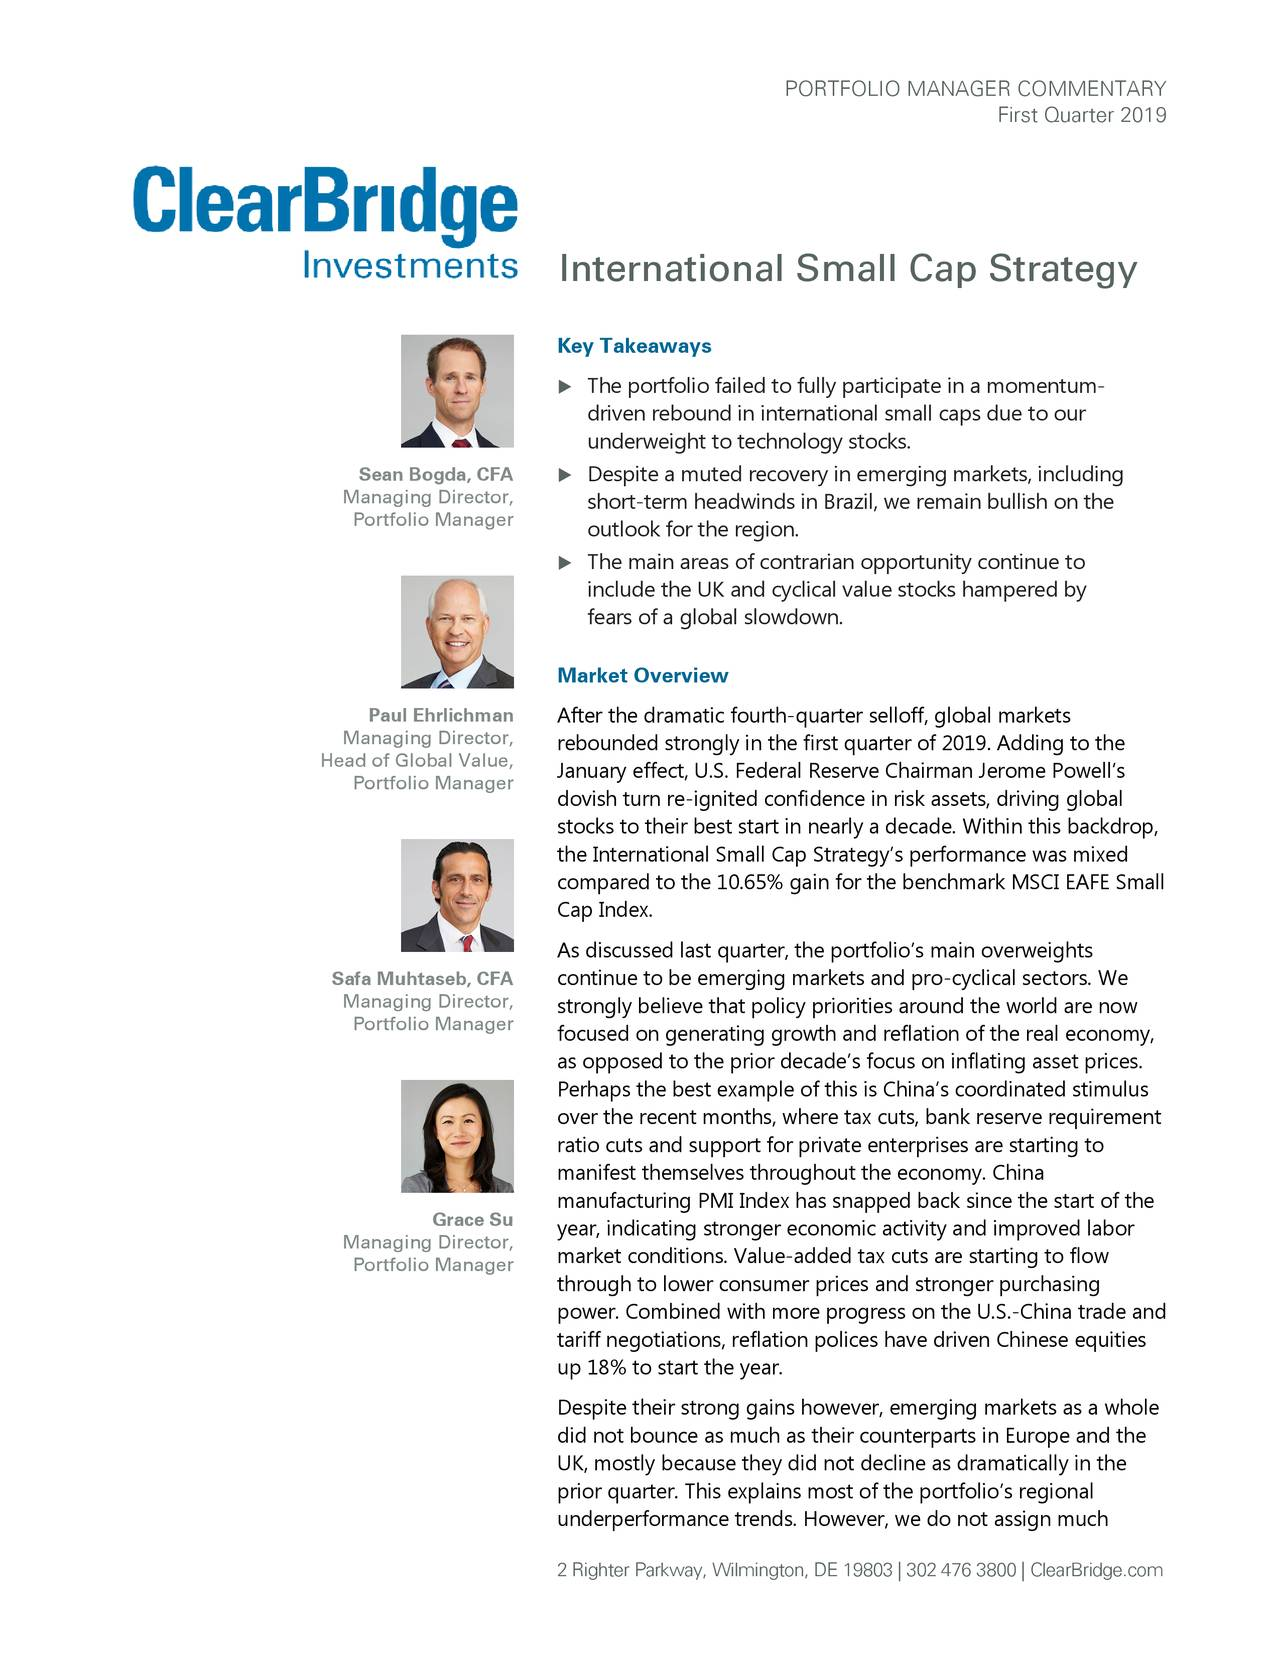 First Quarter 2019 International Small Cap Strategy Key Takeaways  The portfolio failed to fully participate in a momentum- driven rebound in international small cap s due to our underweight to technology stocks. Sean Bogda, CFA  Despite a muted recovery in emerging markets, including Managing Director, short-term headwinds in Brazil, we remain bullish on the Portfolio Manager outlook for the region .  The main areas of contrarian opportunity continue to include the UK and cyclical value stocks hampered by fears of a global slowdown. Market Overview Paul Ehrlichman After the dramatic fourth-quarter selloff, global markets Managing Director, rebounded strongly in the first quarter of 2019. Adding to the Head of Global Value, Portfolio Manager January effect, U.S. Federal Reserve Chairman Jerome Powell's dovish turn re-ignited confidence in risk assets, driving global stocks to their best start in nearly a decade. Within this backdrop, the International Small Cap Strategy's performance was mixed compared to the 10.65% gain for the benchmark MSCI EAFE Small Cap Index. As discussed last quarter, the portfolio's main overweights Safa Muhtaseb, CFA continue to be emerging markets and pro-cyclical sectors. We Managing Director, strongly believe that policy priorities around the world are now Portfolio Manager focused on generating growth and reflation of the real economy, as opposed to the prior decade's focus on inflating asset prices. Perhaps the best example of this is China's coordinated stimulus over the recent months, where tax cuts, bank reserve requirement ratio cuts and support for private enterprises are starting to manifest themselves throughout the economy. China manufacturing PMI Index has snapped back since the start of the Grace Su year, indicating stronger economic activity and improved labor Managing Director, market conditions. Value-added tax cuts are starting to flow Portfolio Manager through to lower consumer prices and stronger purchasing power. Combi